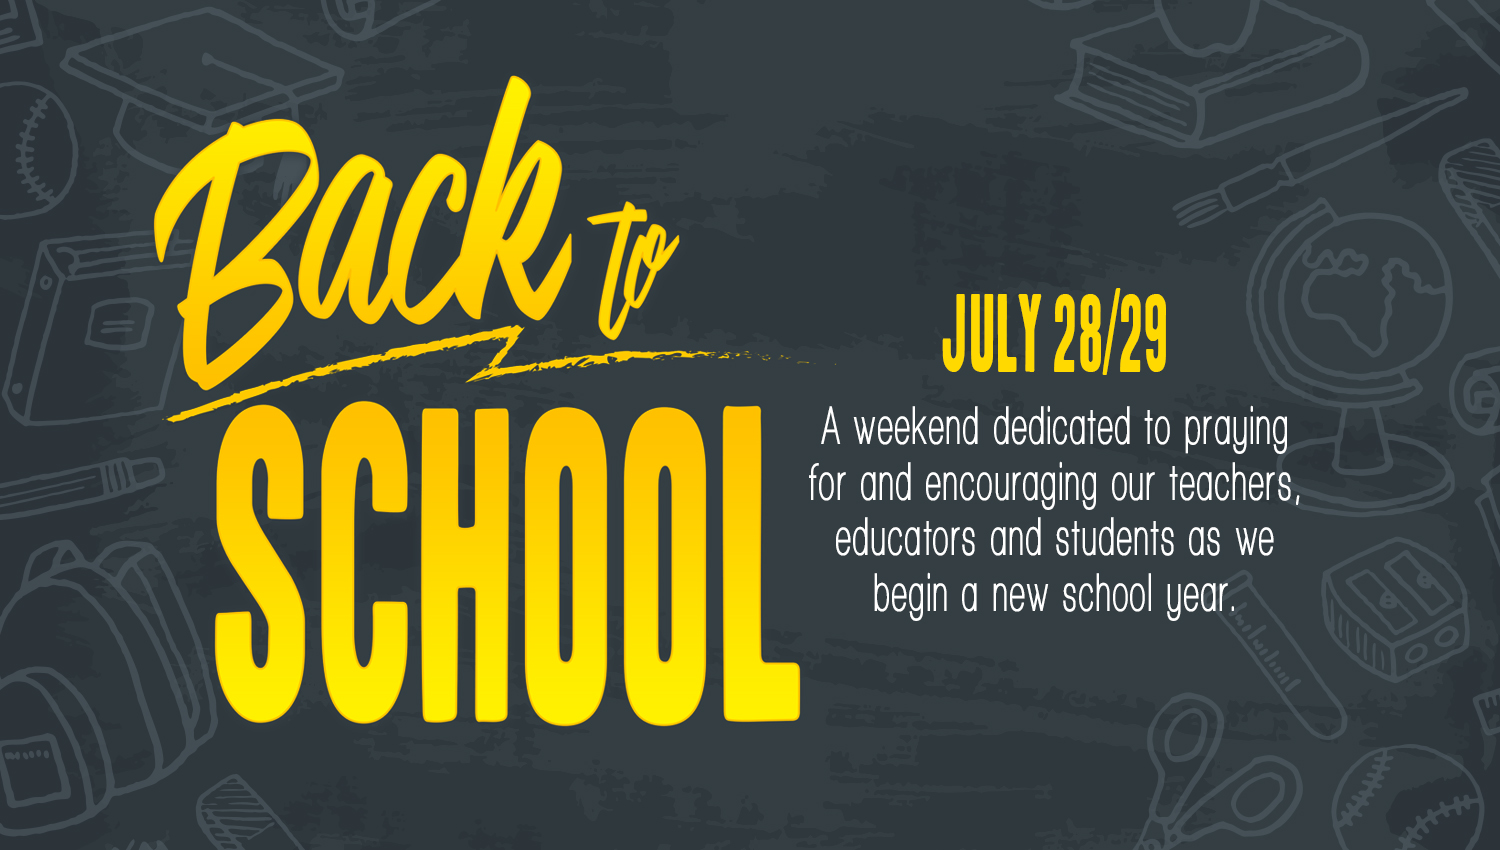 Back to School Special Weekend Services